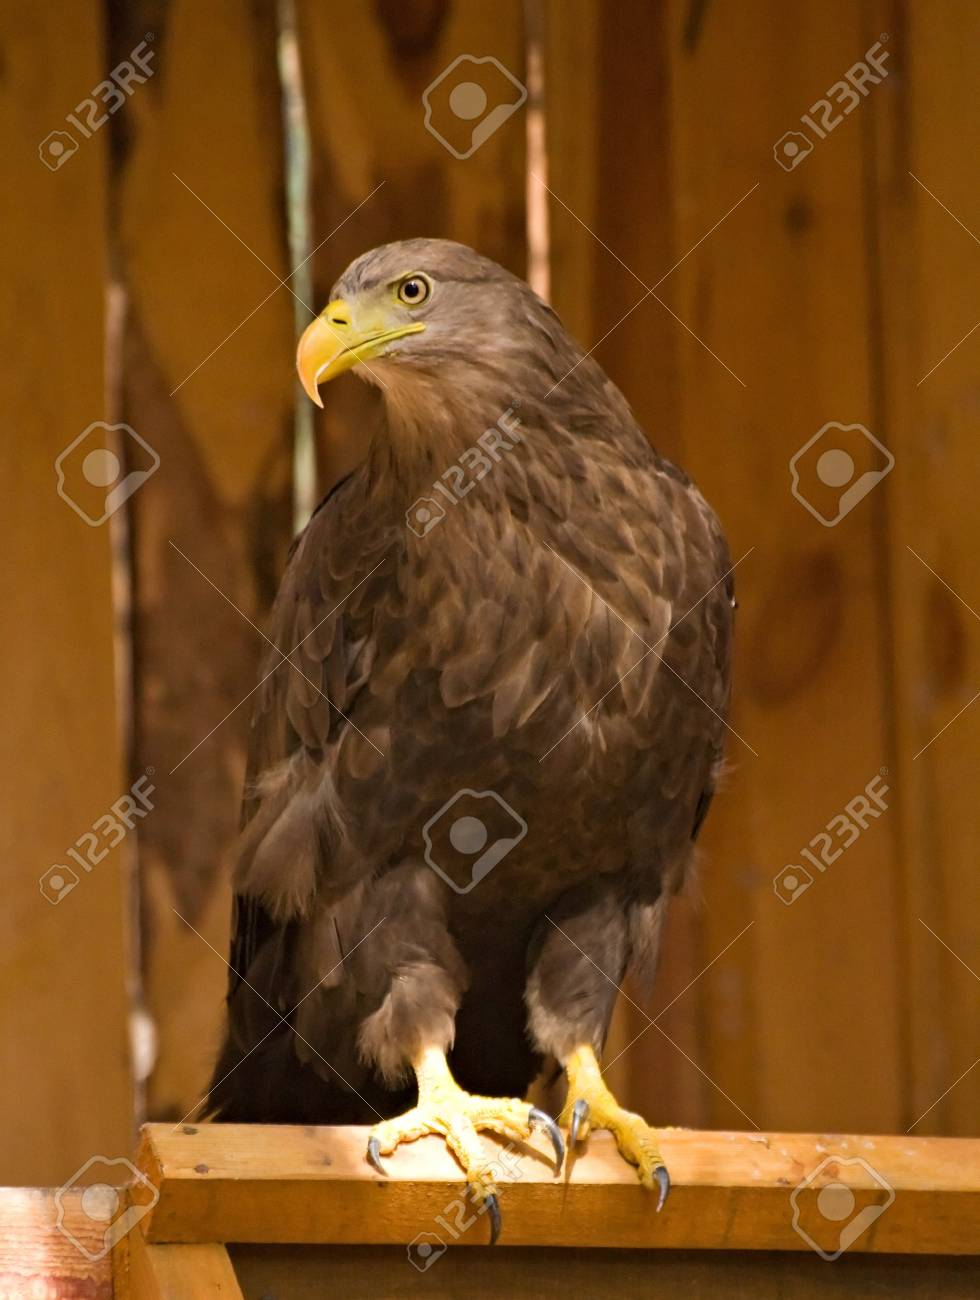 Photo of golden eagle made at the birds nursery in Sysert, Russia Stock Photo - 3987675